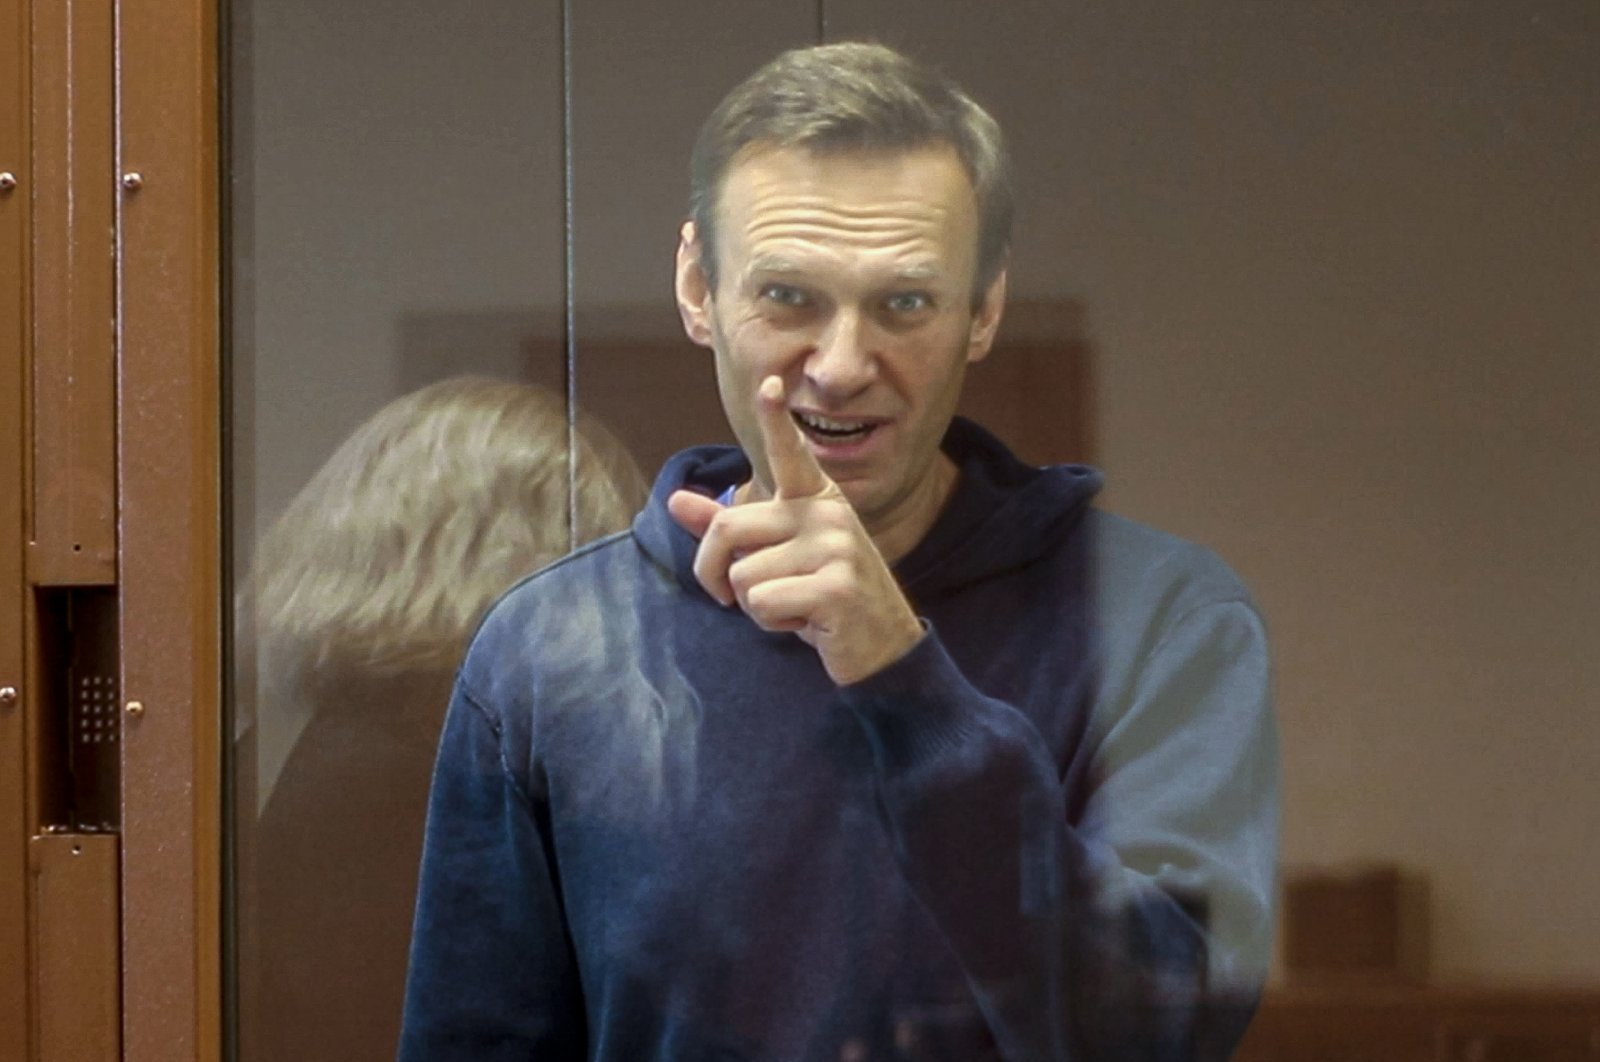 Russian opposition leader Alexei Navalny gestures during a hearing on his charges for defamation in the Babuskinsky District Court in Moscow, Russia, Feb. 16, 2021. (AP Photo)